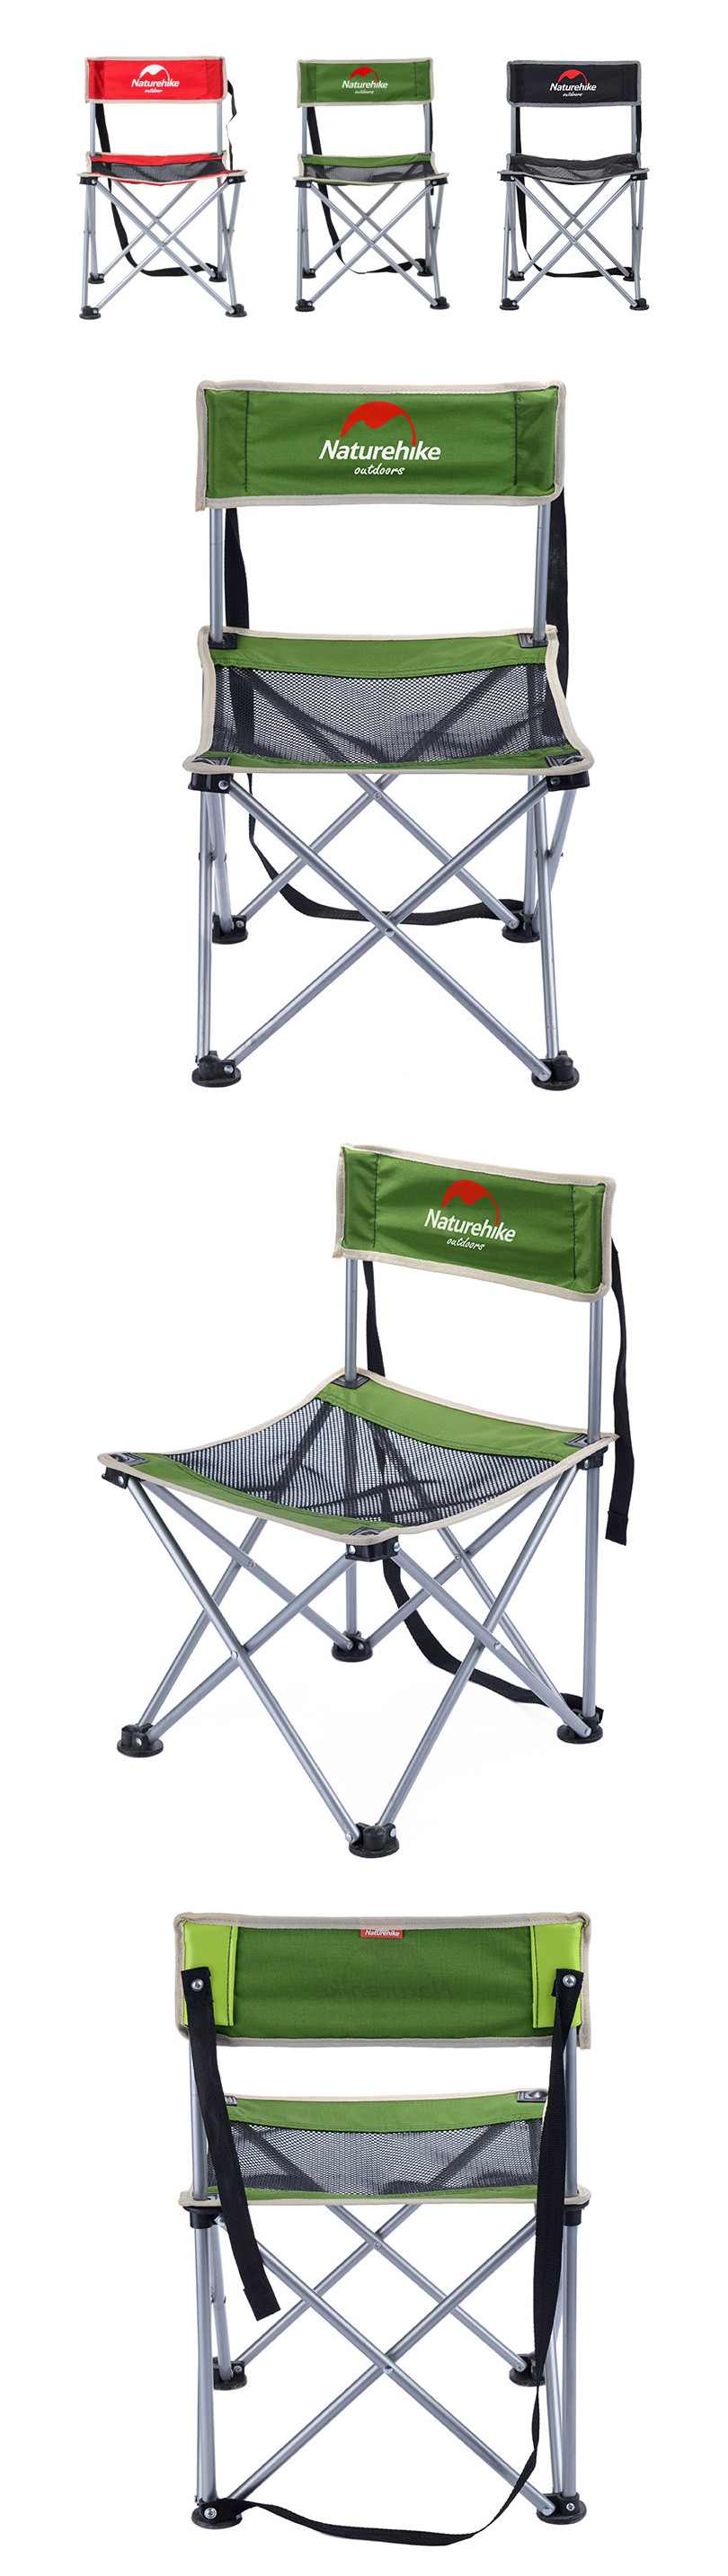 Naturehike Camp Folding Chair Portable Picnic Beach Ultralight